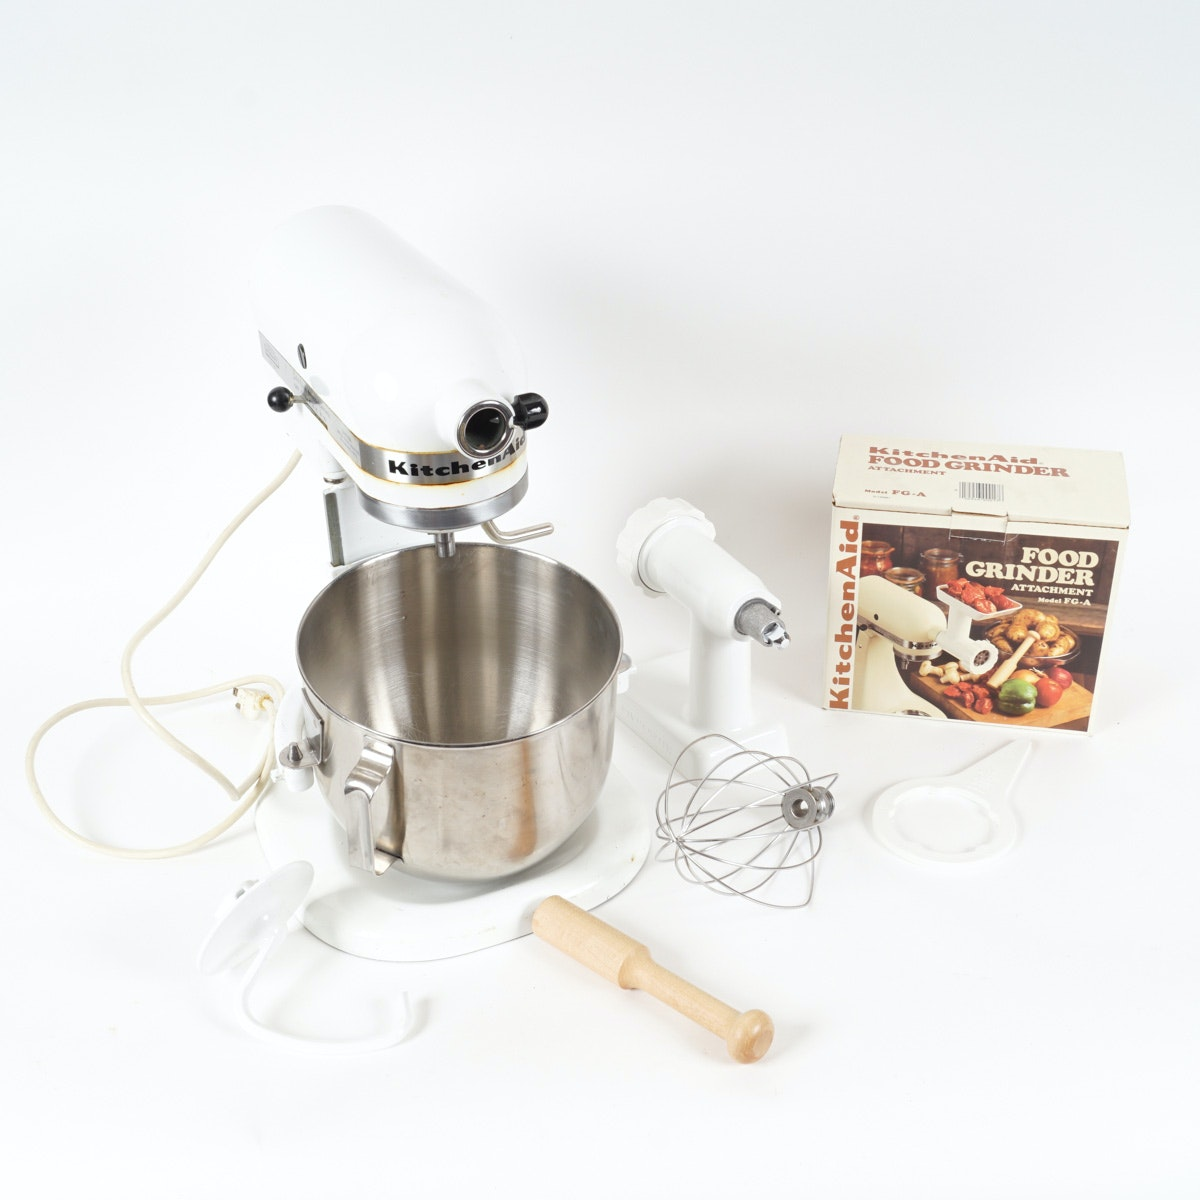 KitchenAid Stand Mixer with Accessories